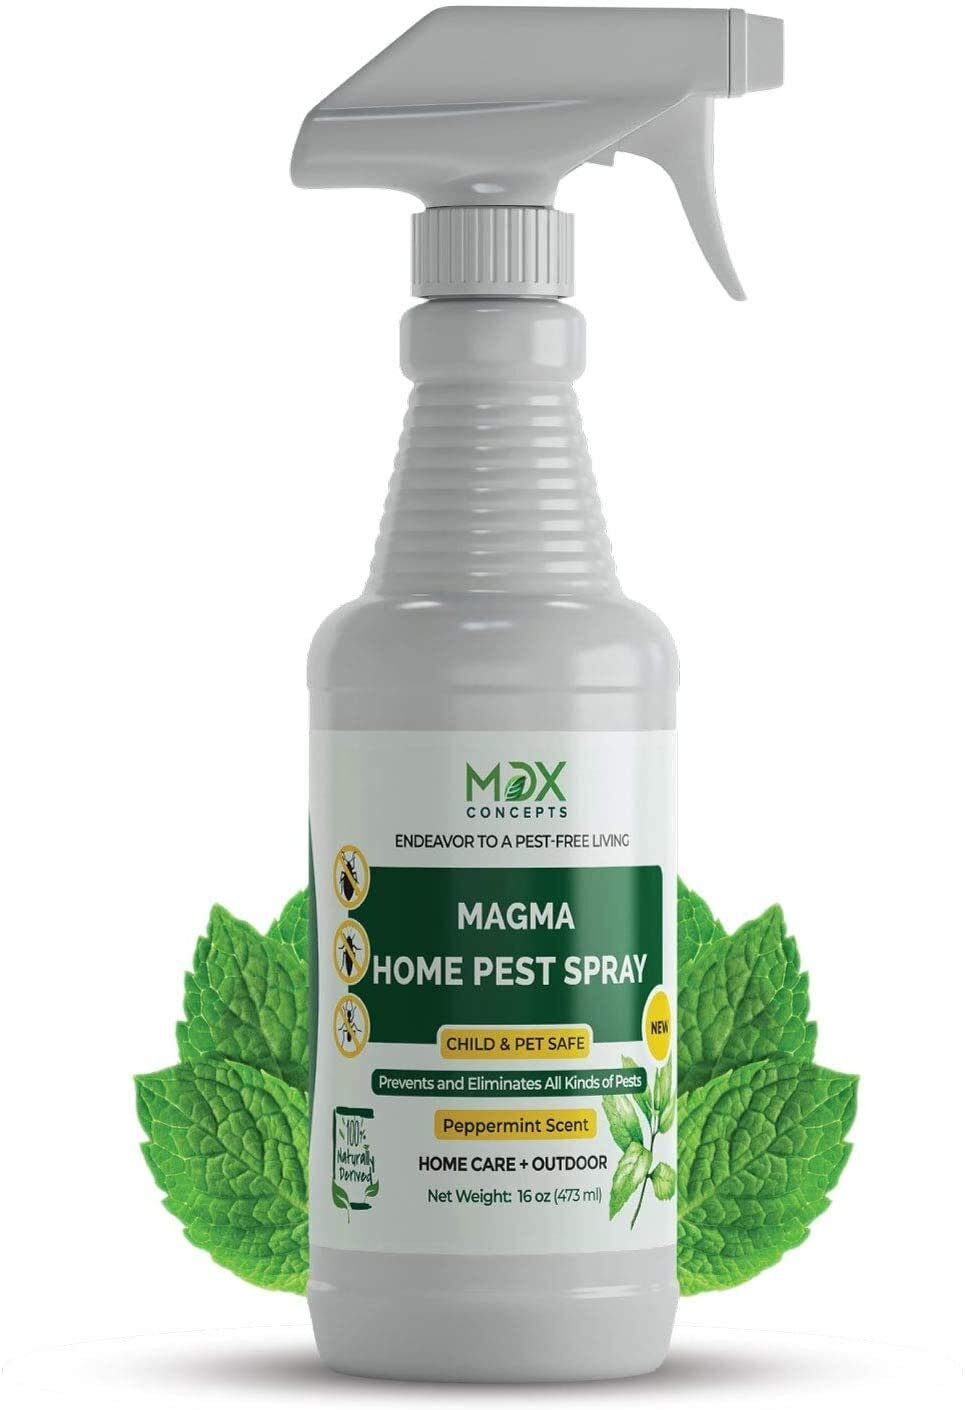 mdxconcepts Organic Home Pest Control Spray - Kills & Repels, Ants, Roaches, Spiders, and Other Pests Guaranteed - All Natural - Pet Safe - (Doesn't Include Sprayers) Indoor/Outdoor Spray - 16oz